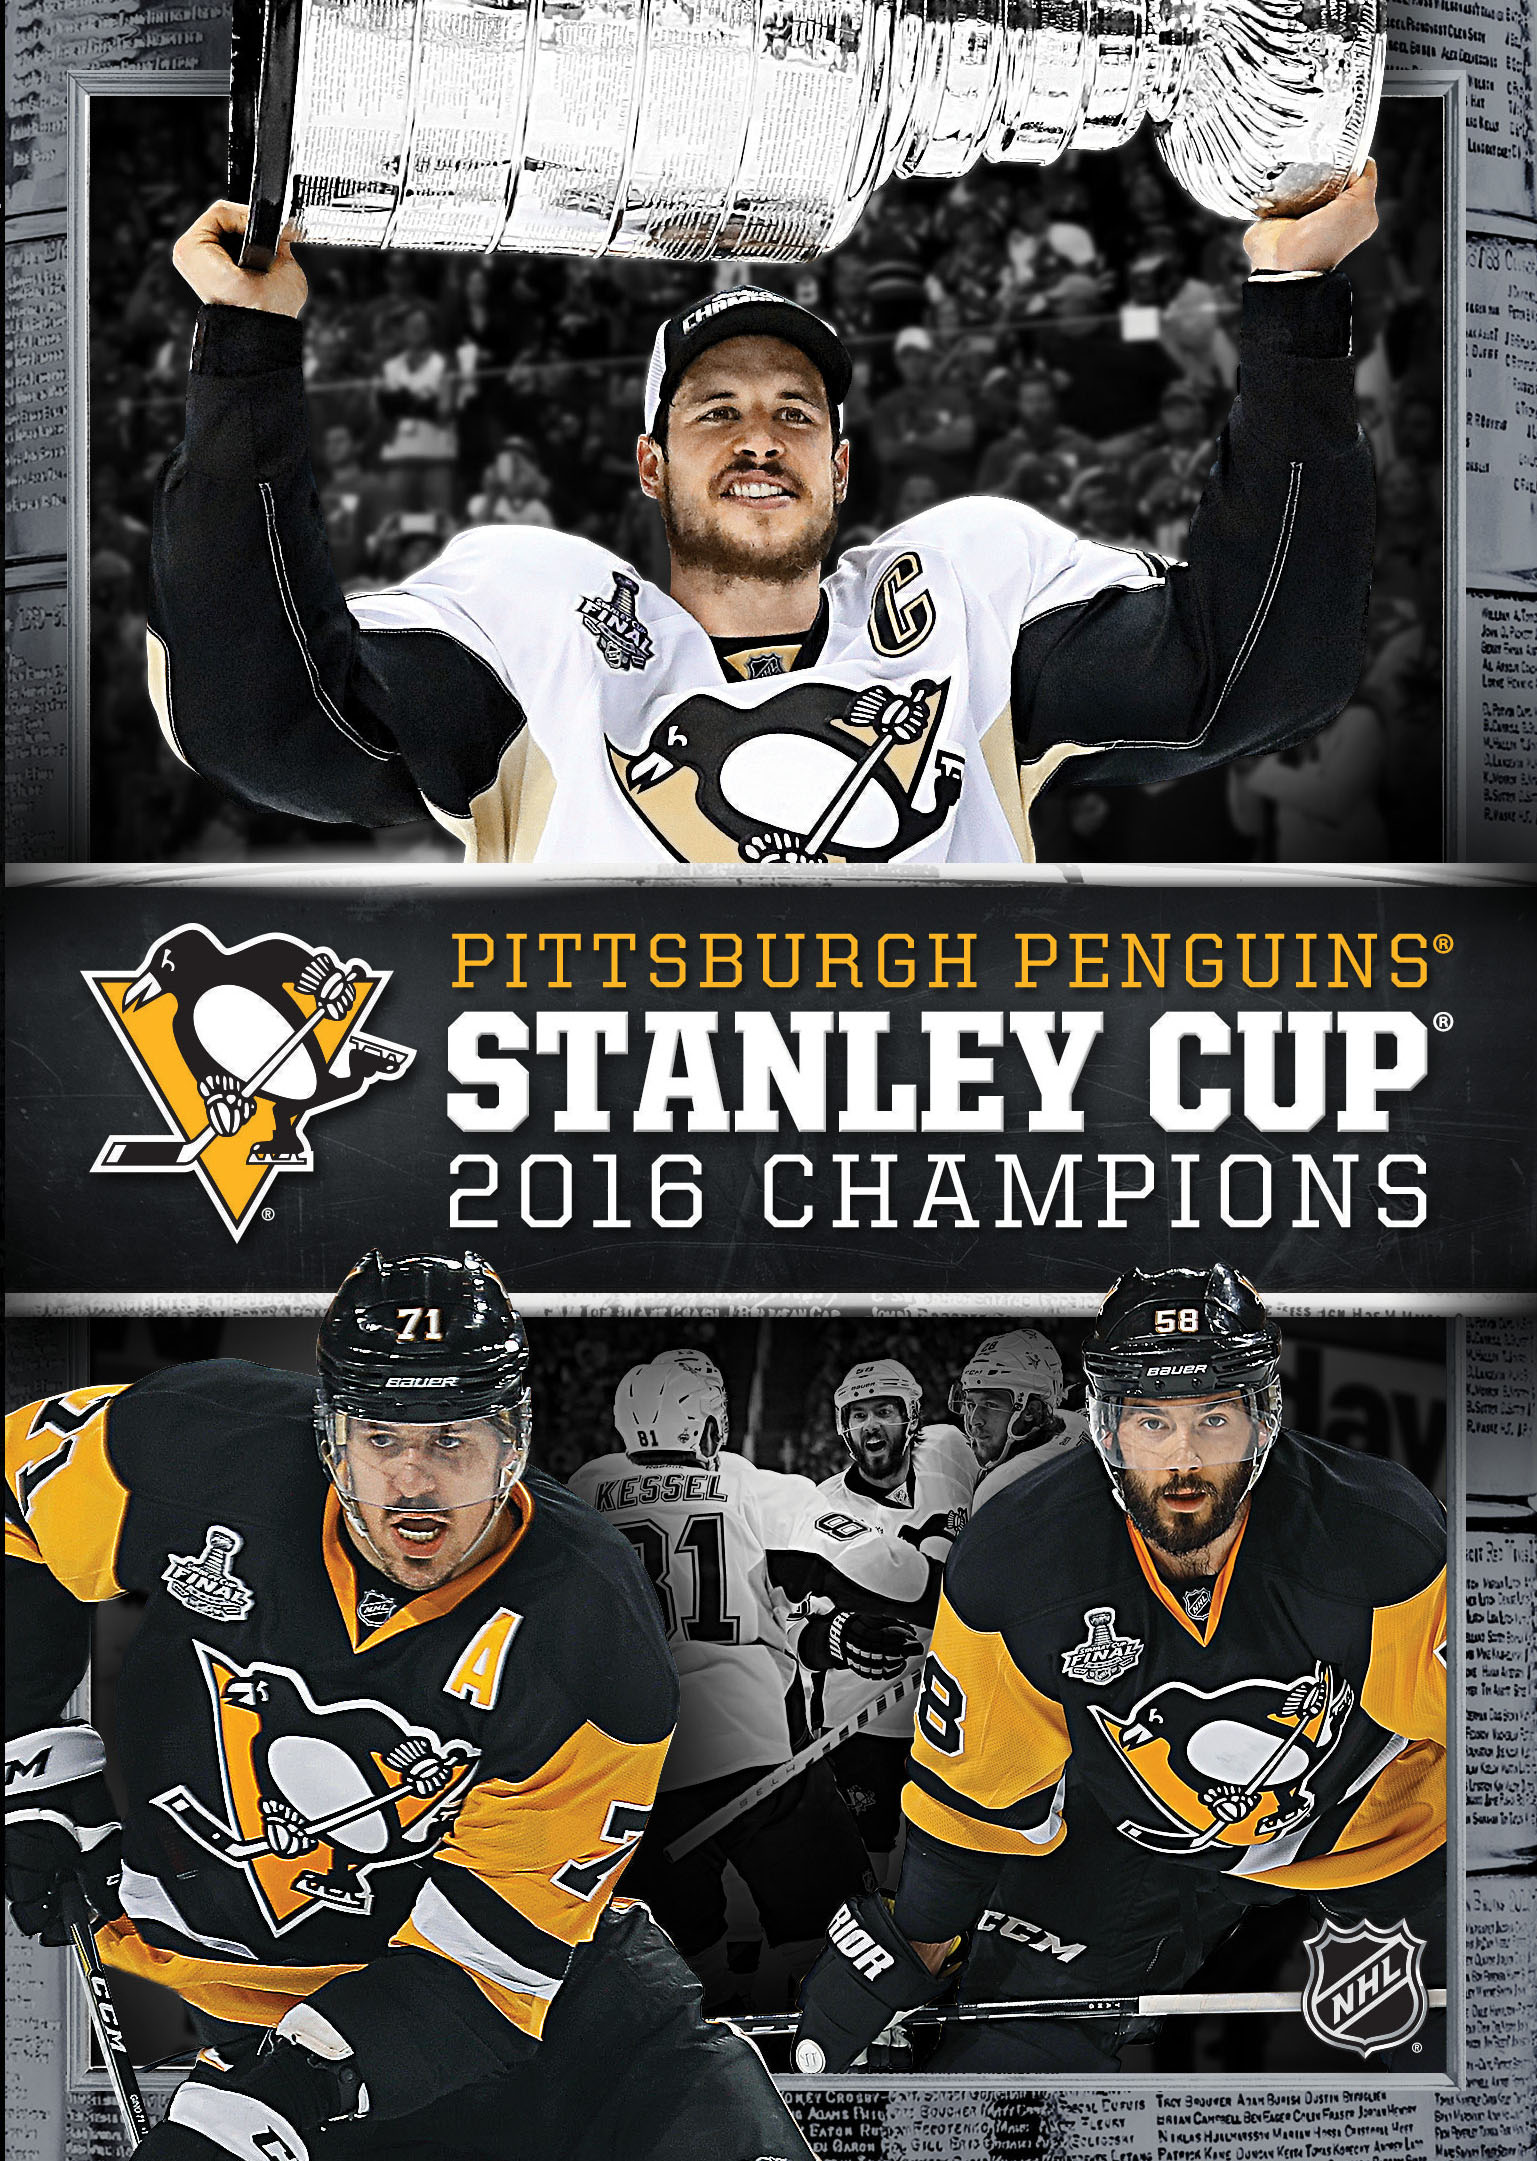 Pittsburgh Penguins 2016 Stanley Cup Champions - NHL ...